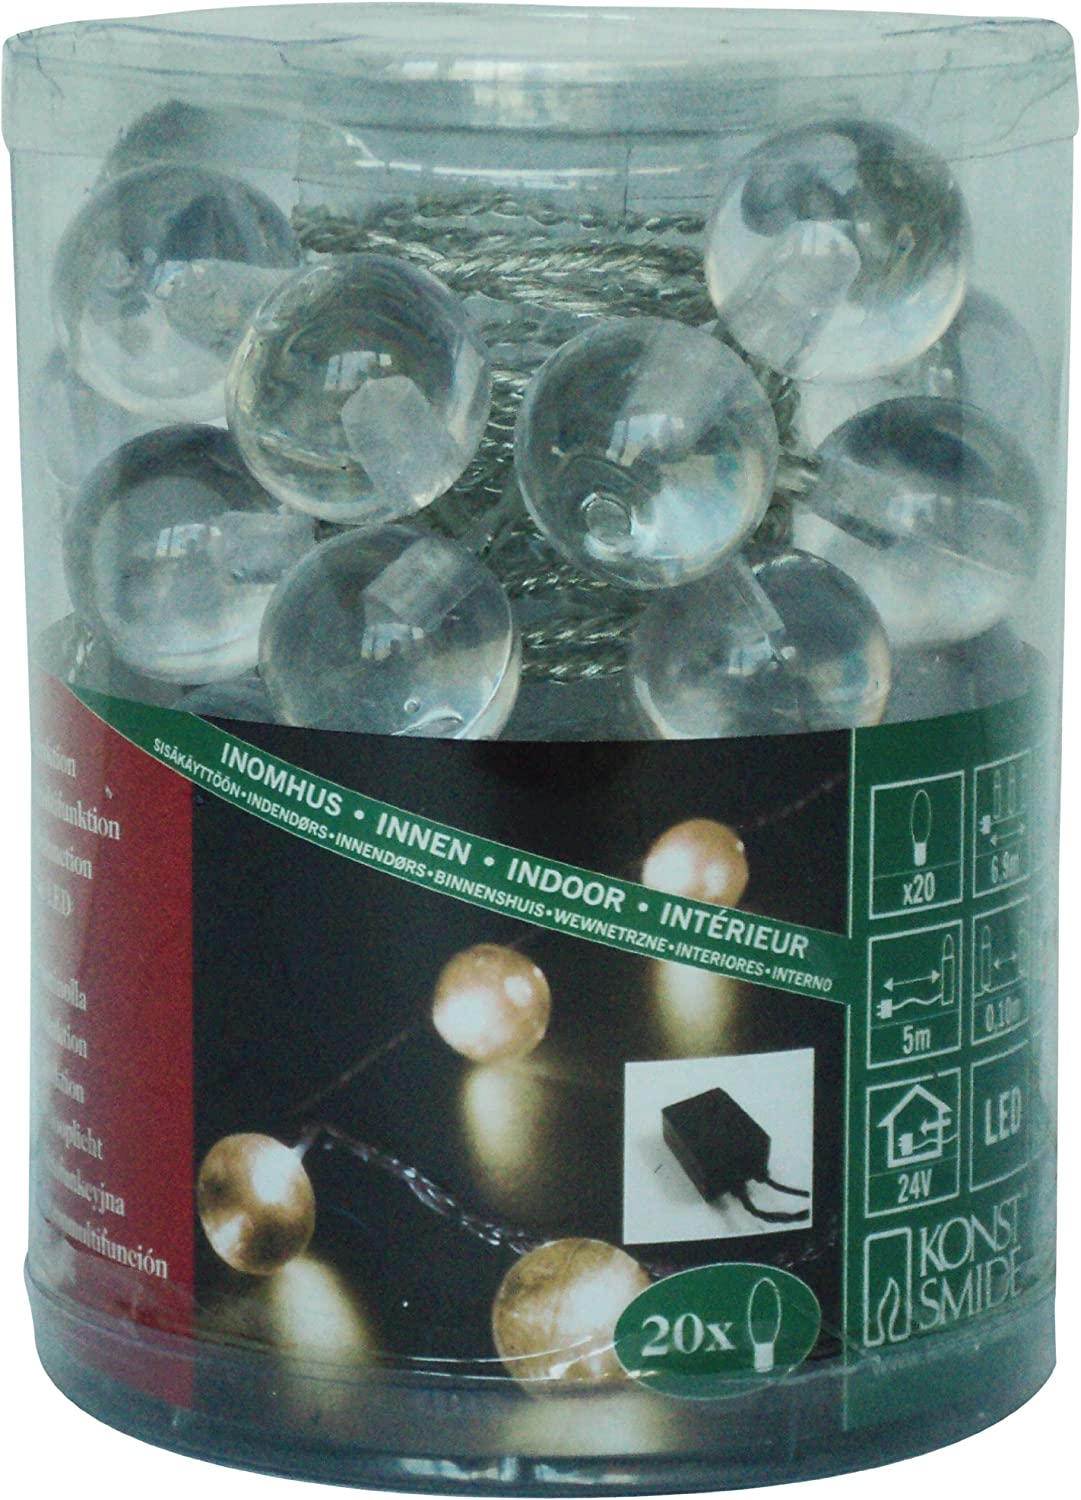 // Push in Replaceable Bulbs Outdoor Fairy Lights 240 Clear Christmas Lights Konstsmide 2080-000 Clear Traditional Fairy Light Set On Green Cable Outdoor Christmas Lights or Indoor Use IP20